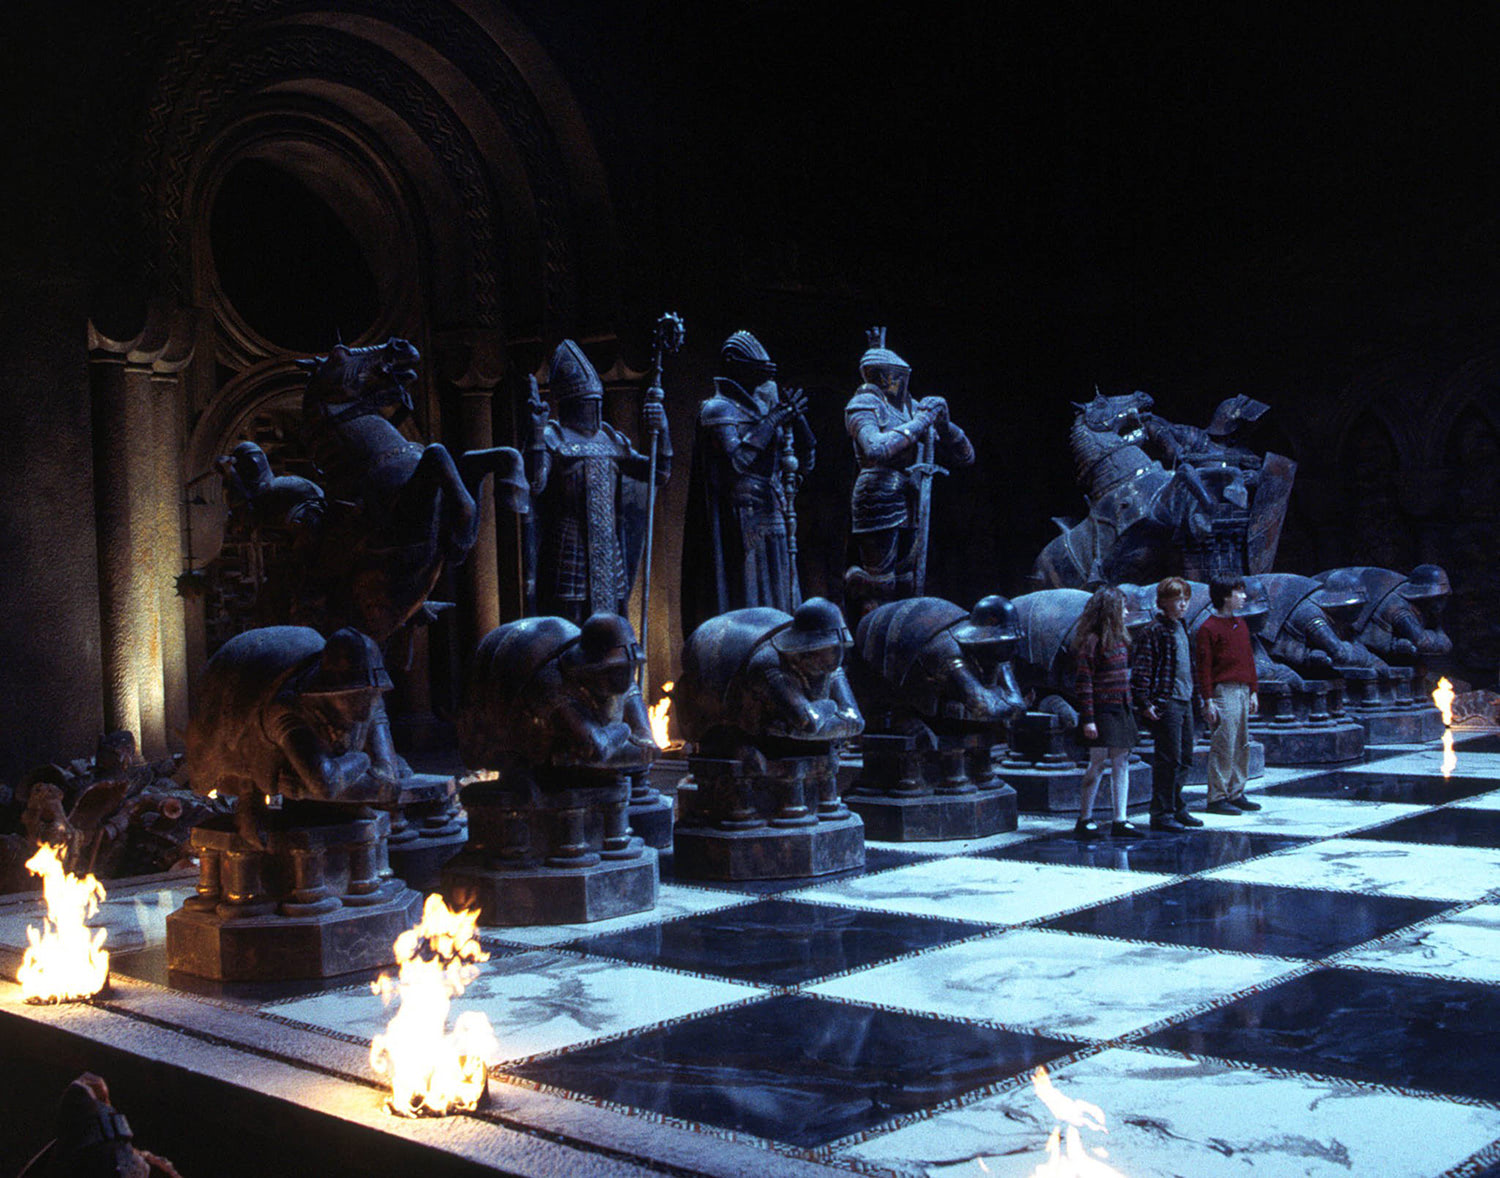 The magic chess match